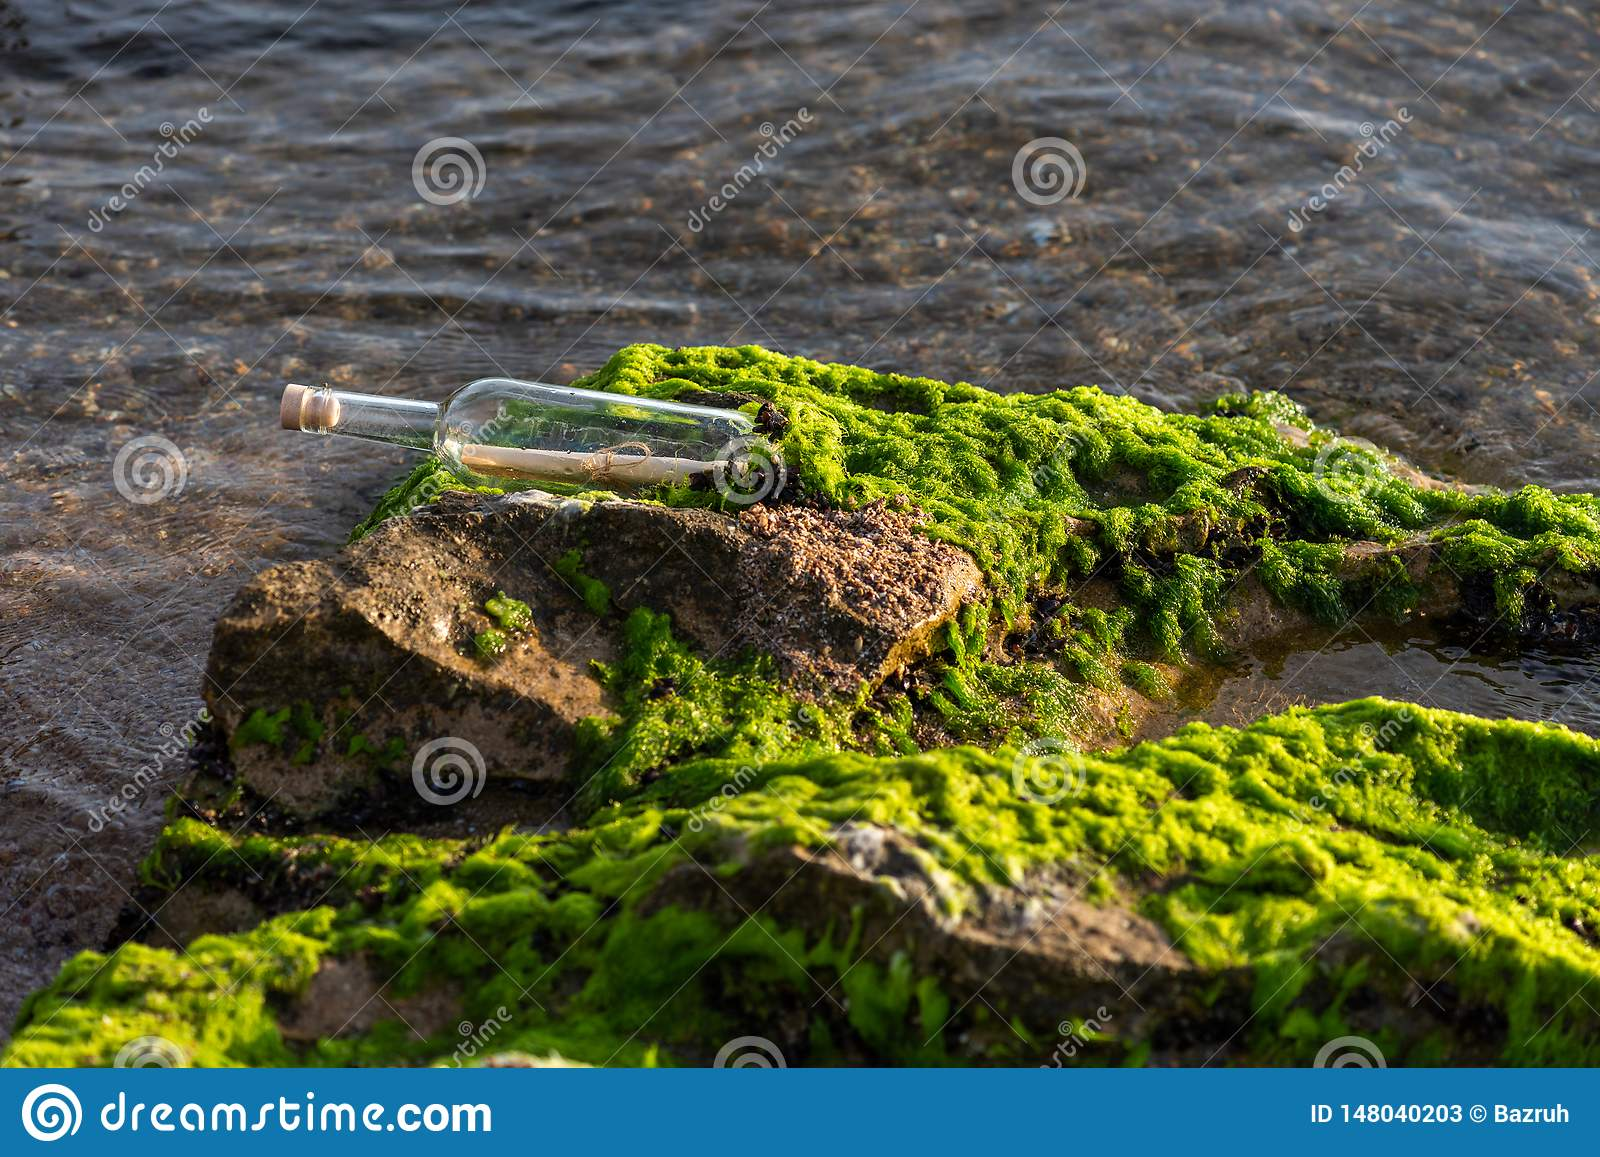 Message in a bottle on a stone covered with seaweed